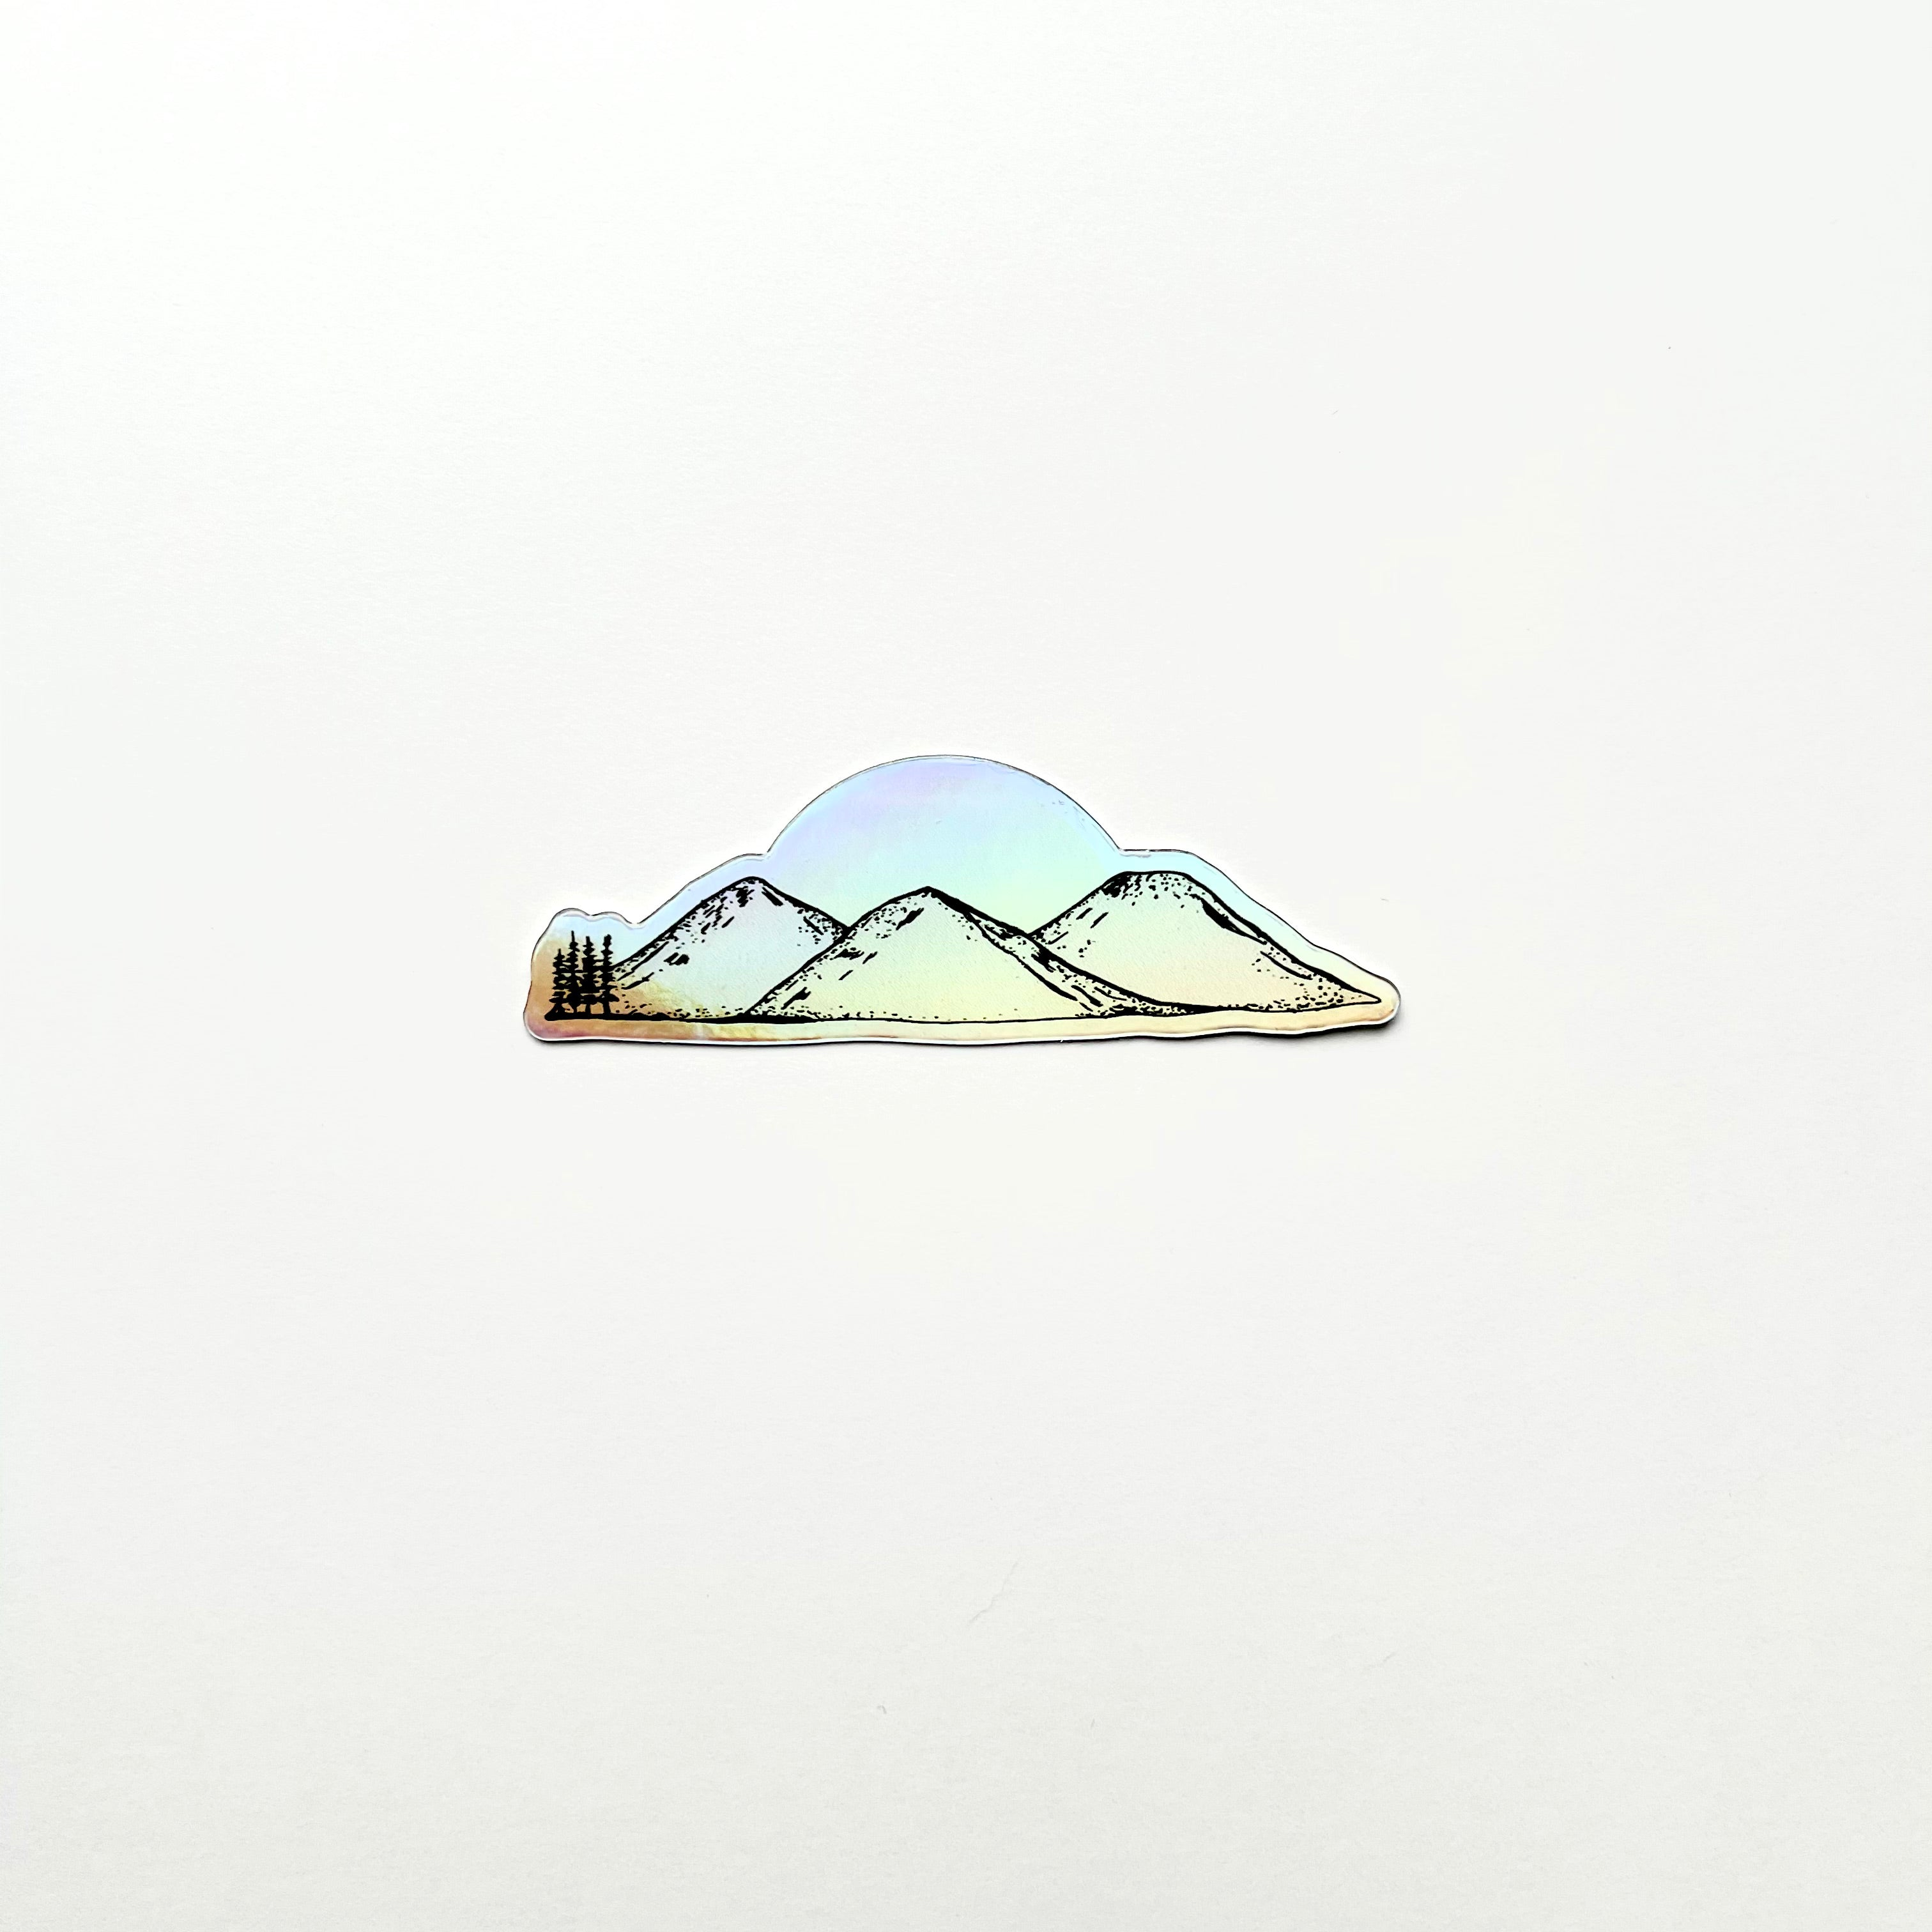 3 Mountains Holographic Sticker-Vinyl Sticker-Roam Wild Designs